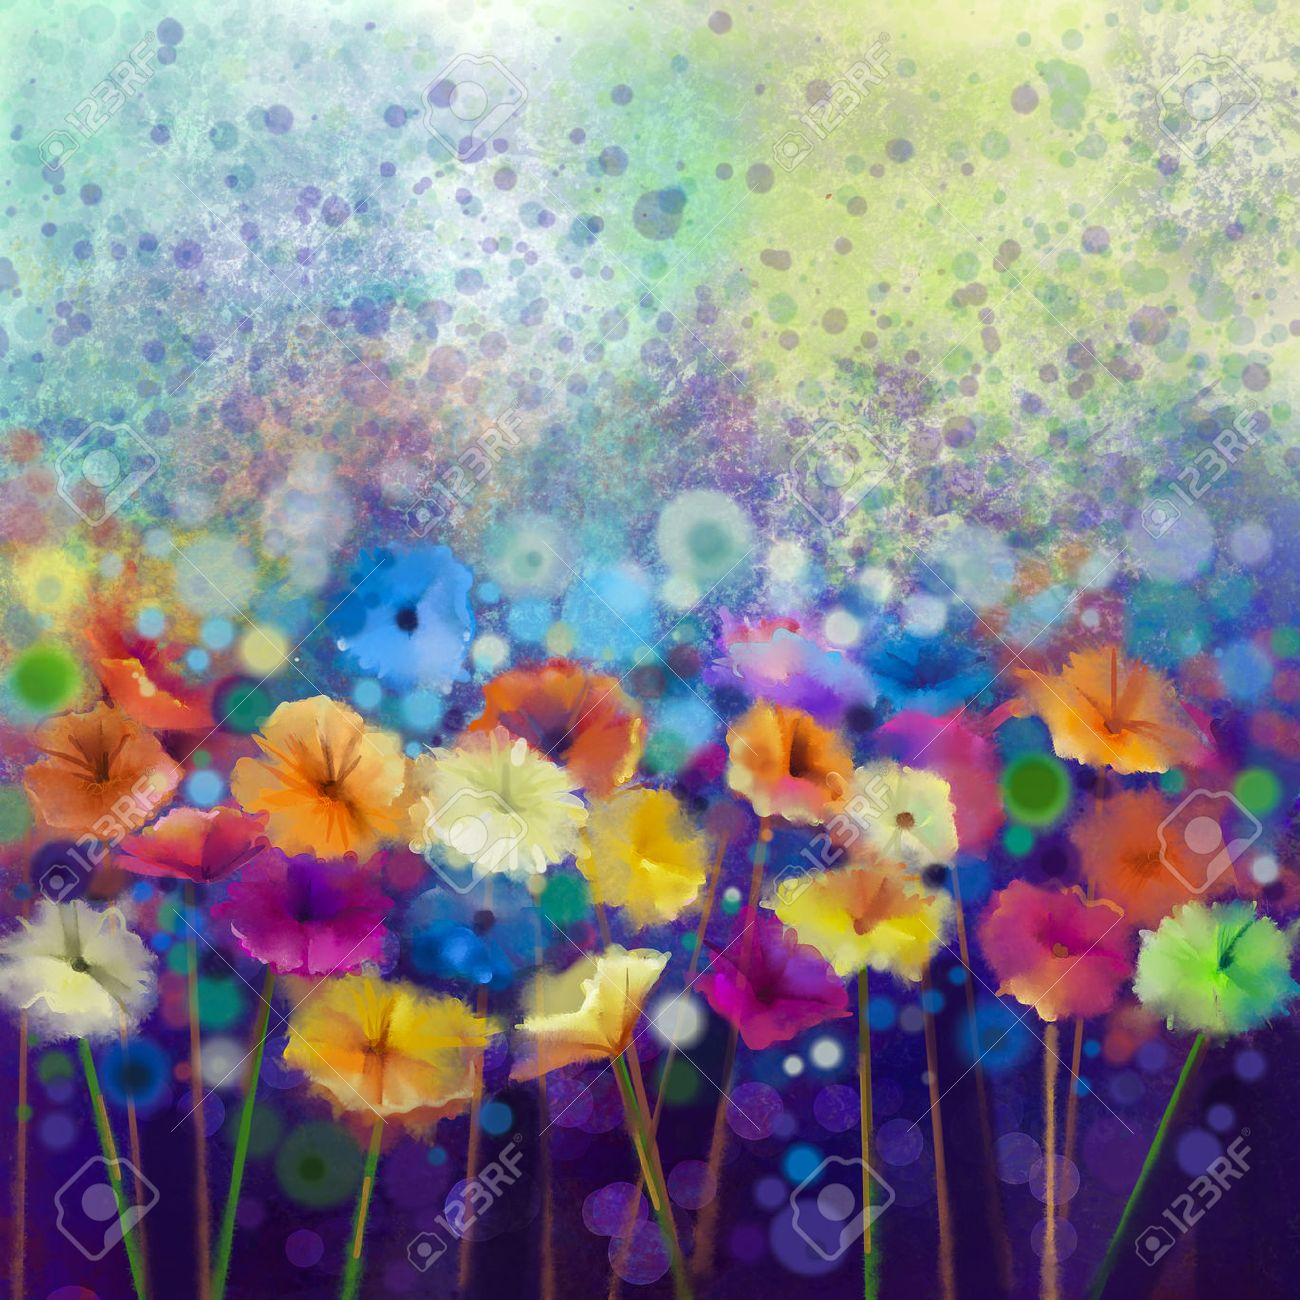 Abstract floral watercolor painting. Hand paint White, Yellow, Pink and Red color of daisy- gerbera flowers in soft color on blue- green color background.Spring flower seasonal nature background - 47943006